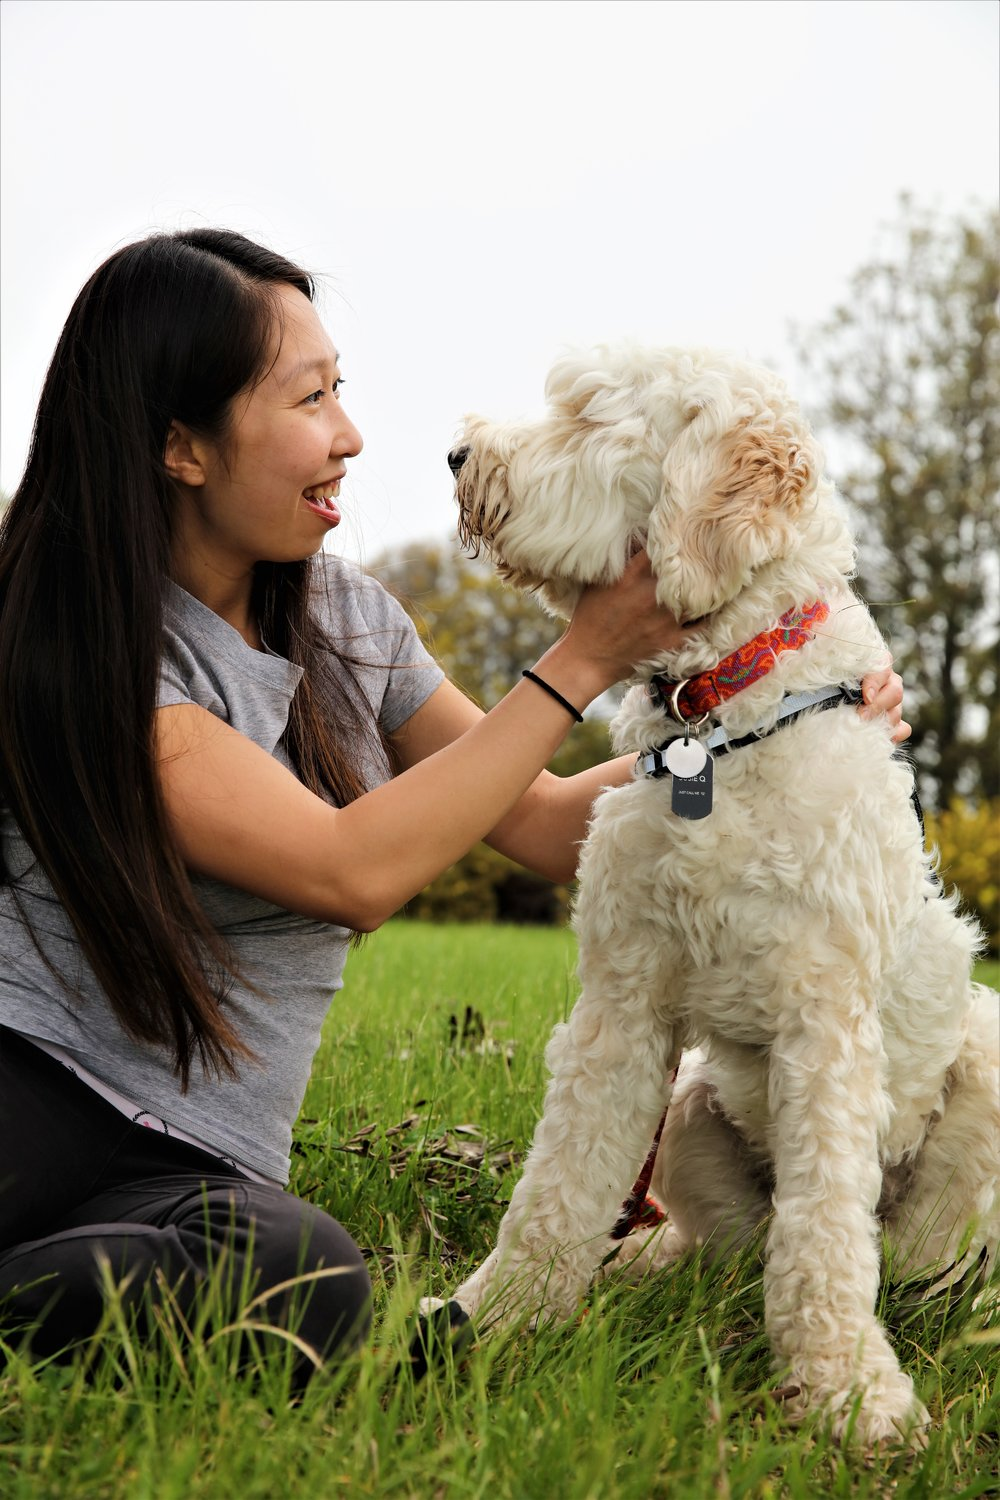 An Asian woman with long black hair smiling at her companion dog while the dog looks back at her.